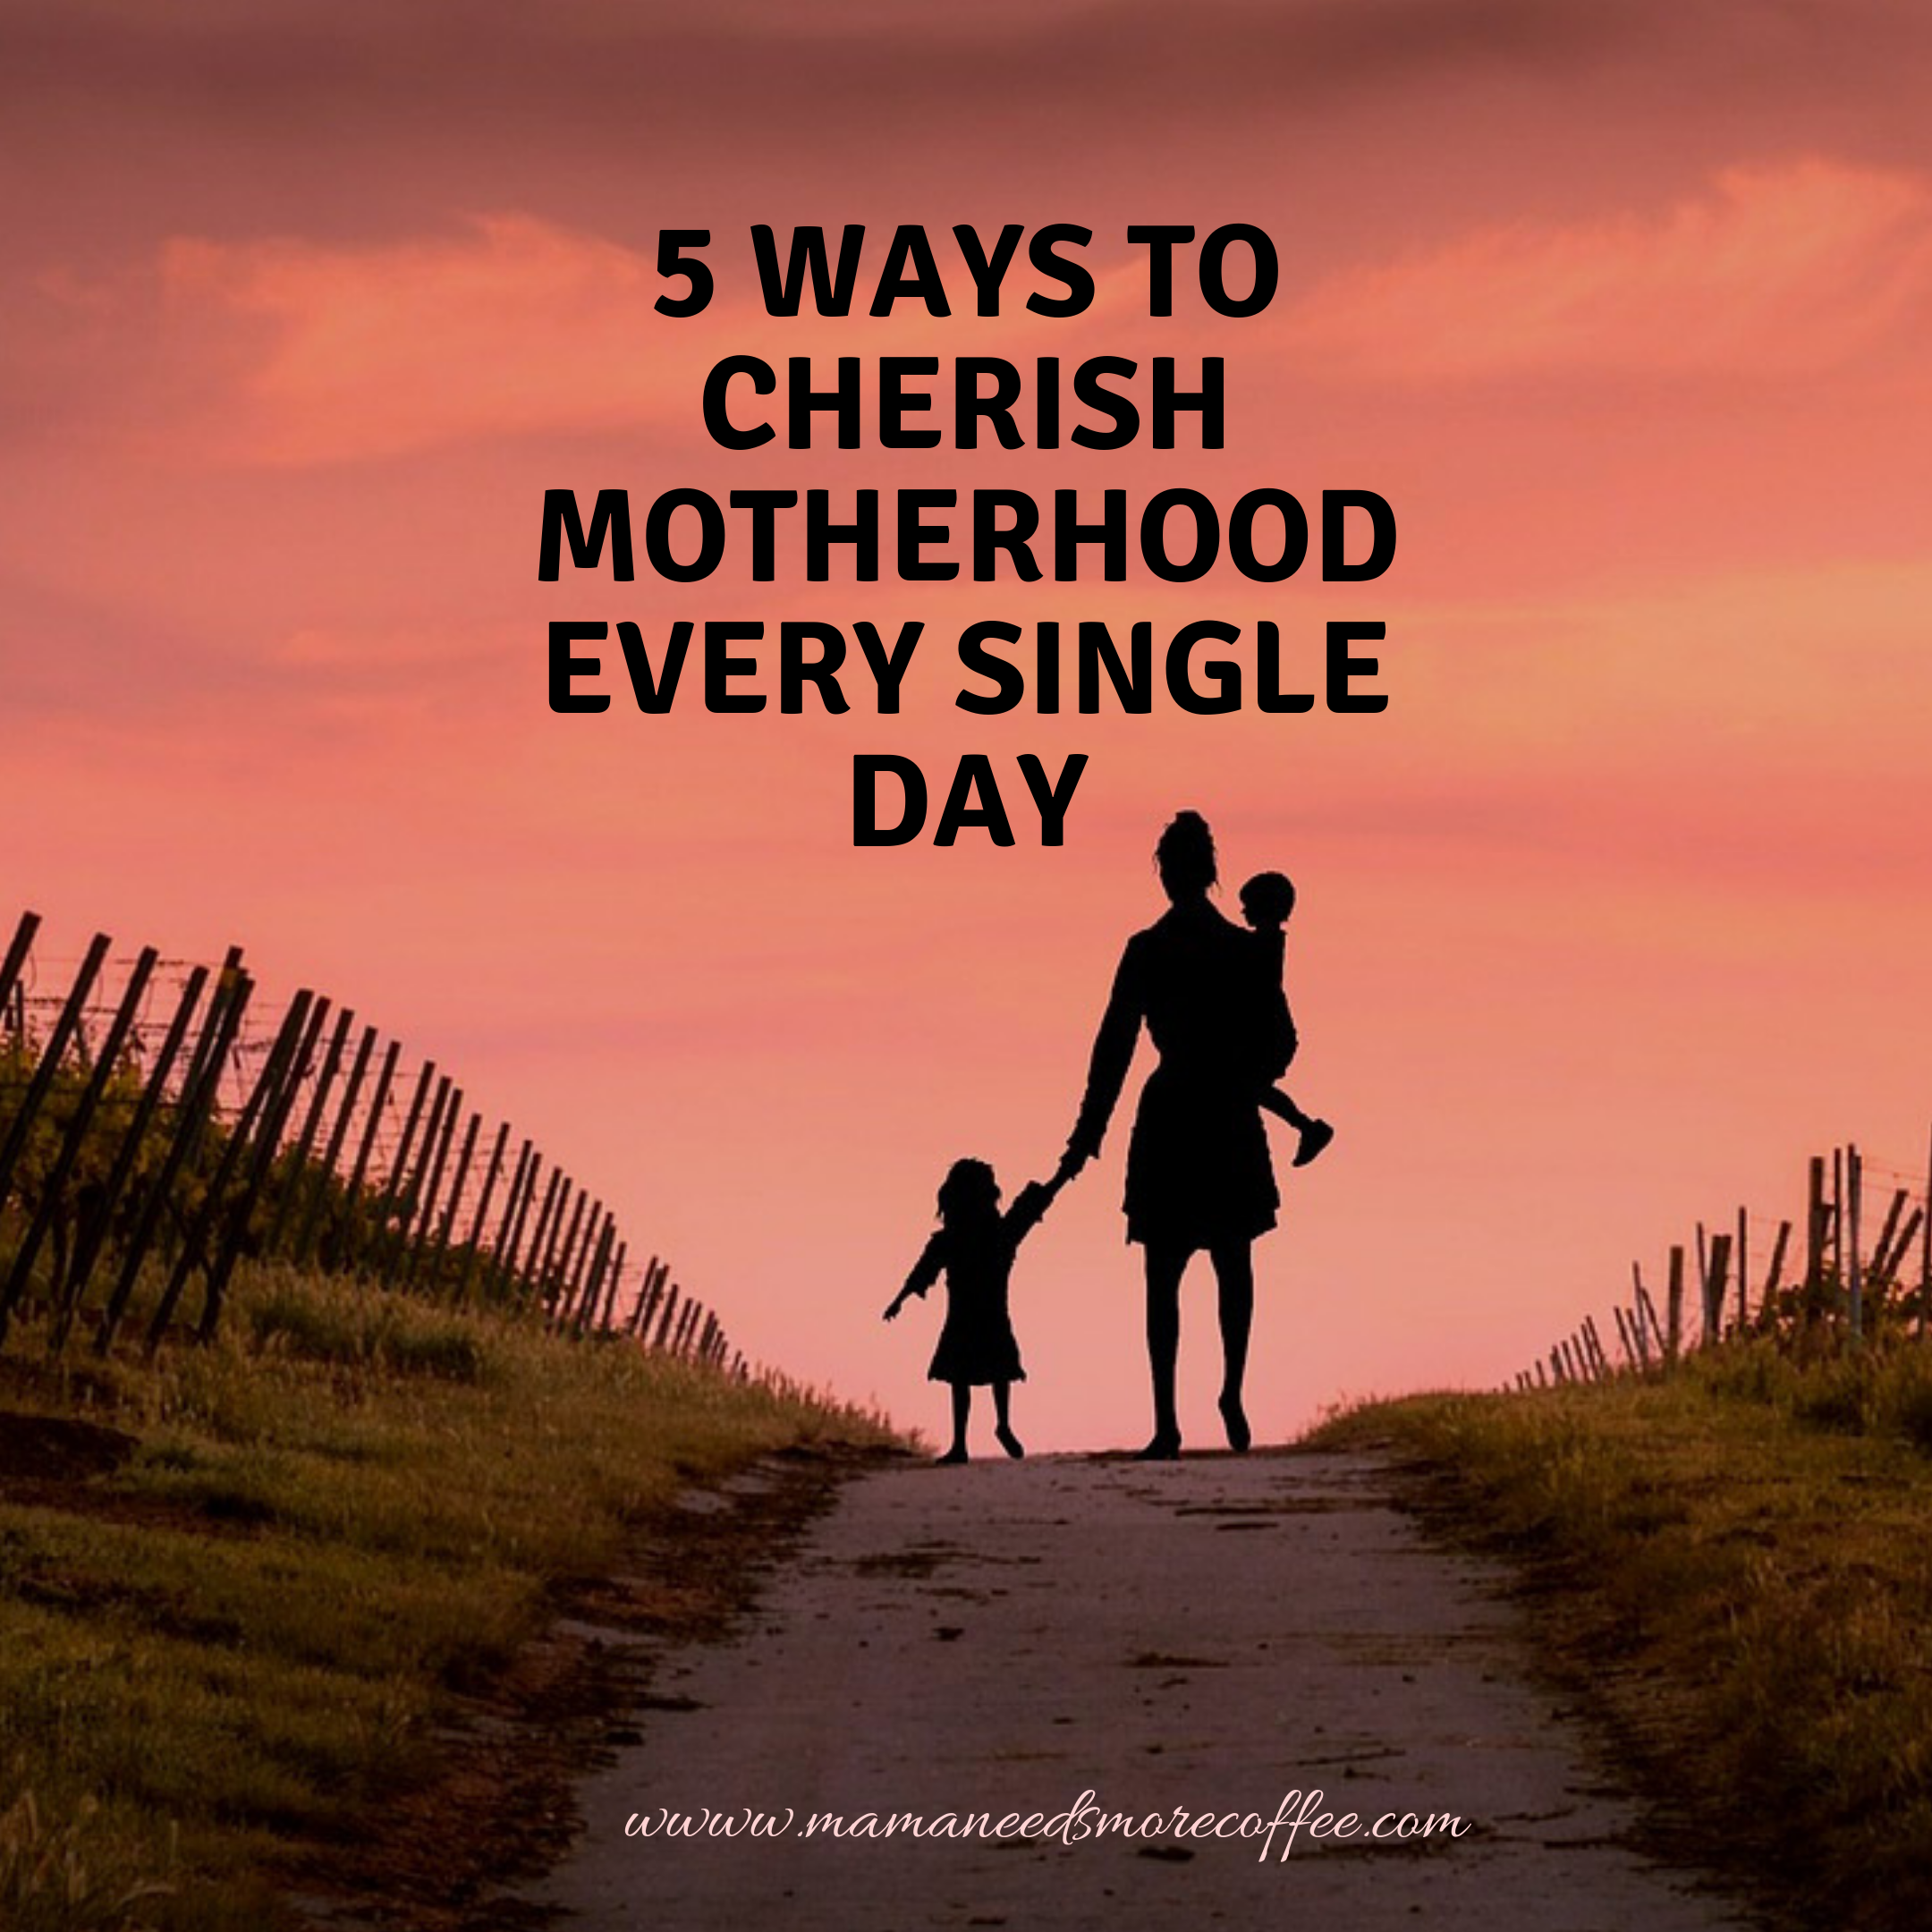 5 ways to cherish motherhood